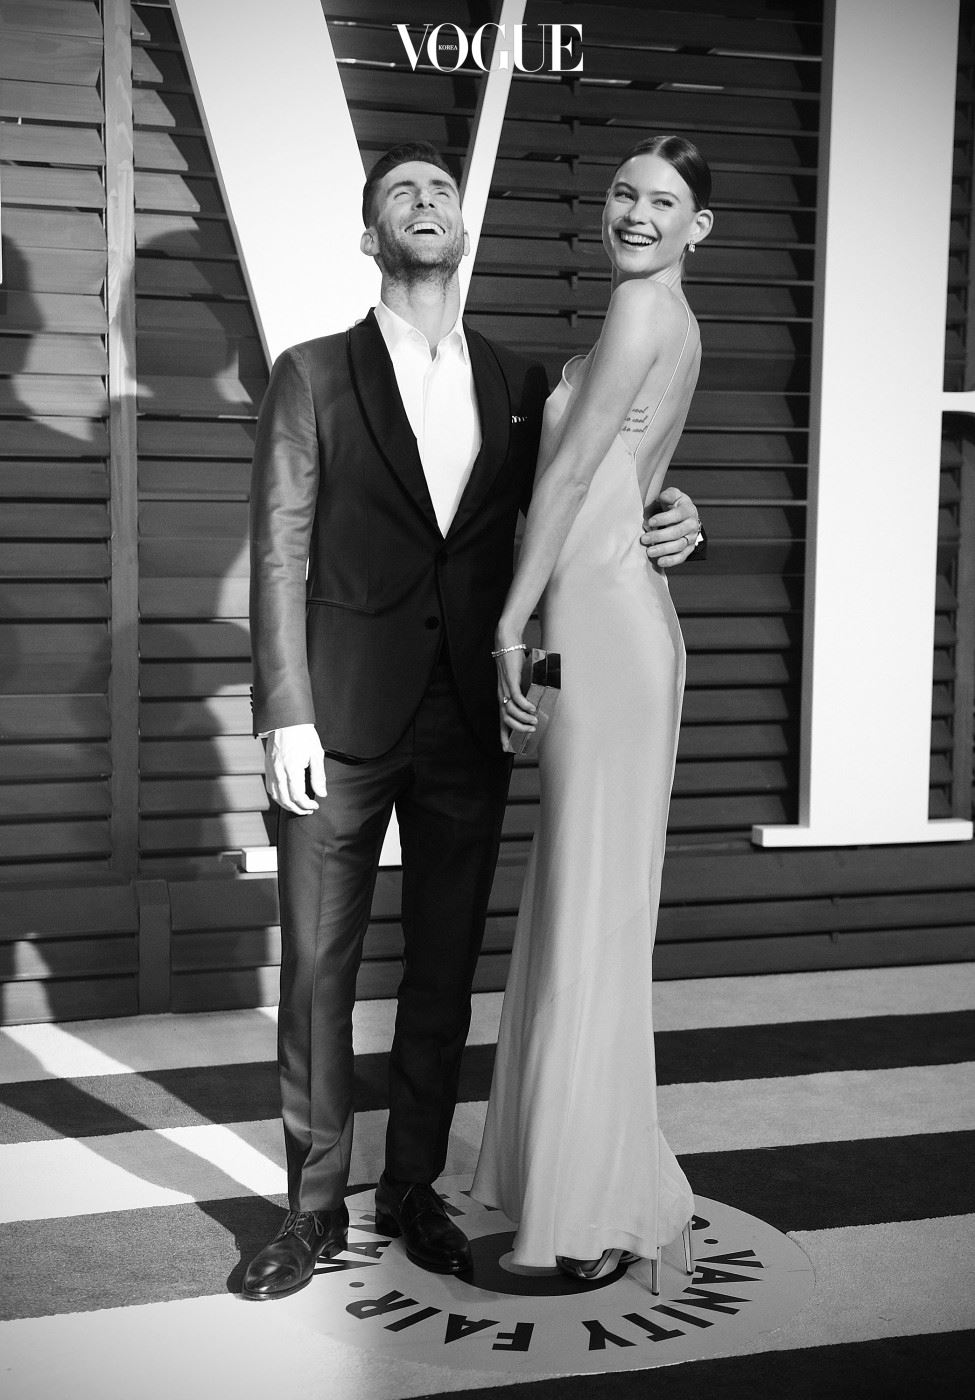 BEVERLY HILLS, CA - FEBRUARY 22:  ( Editors Note: Image processed using digital filters )  Singer Adam Levine and wife Behati Prinsloo attend the 2015 Vanity Fair Oscar Party at Wallis Annenberg Center for the Performing Arts on February 22, 2015 in Beverly Hills, California.  (Photo by Jason Kempin/Getty Images)